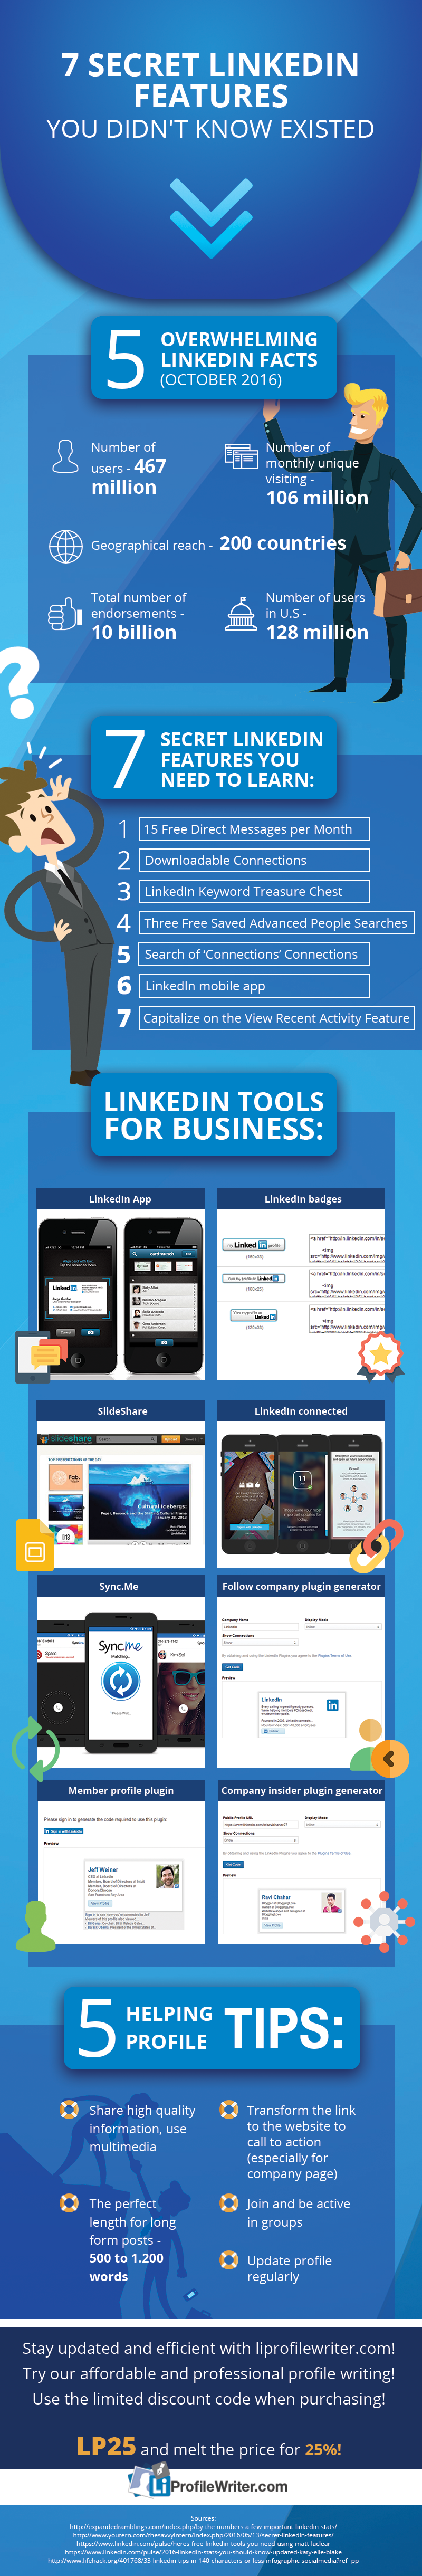 top linkedin features for business